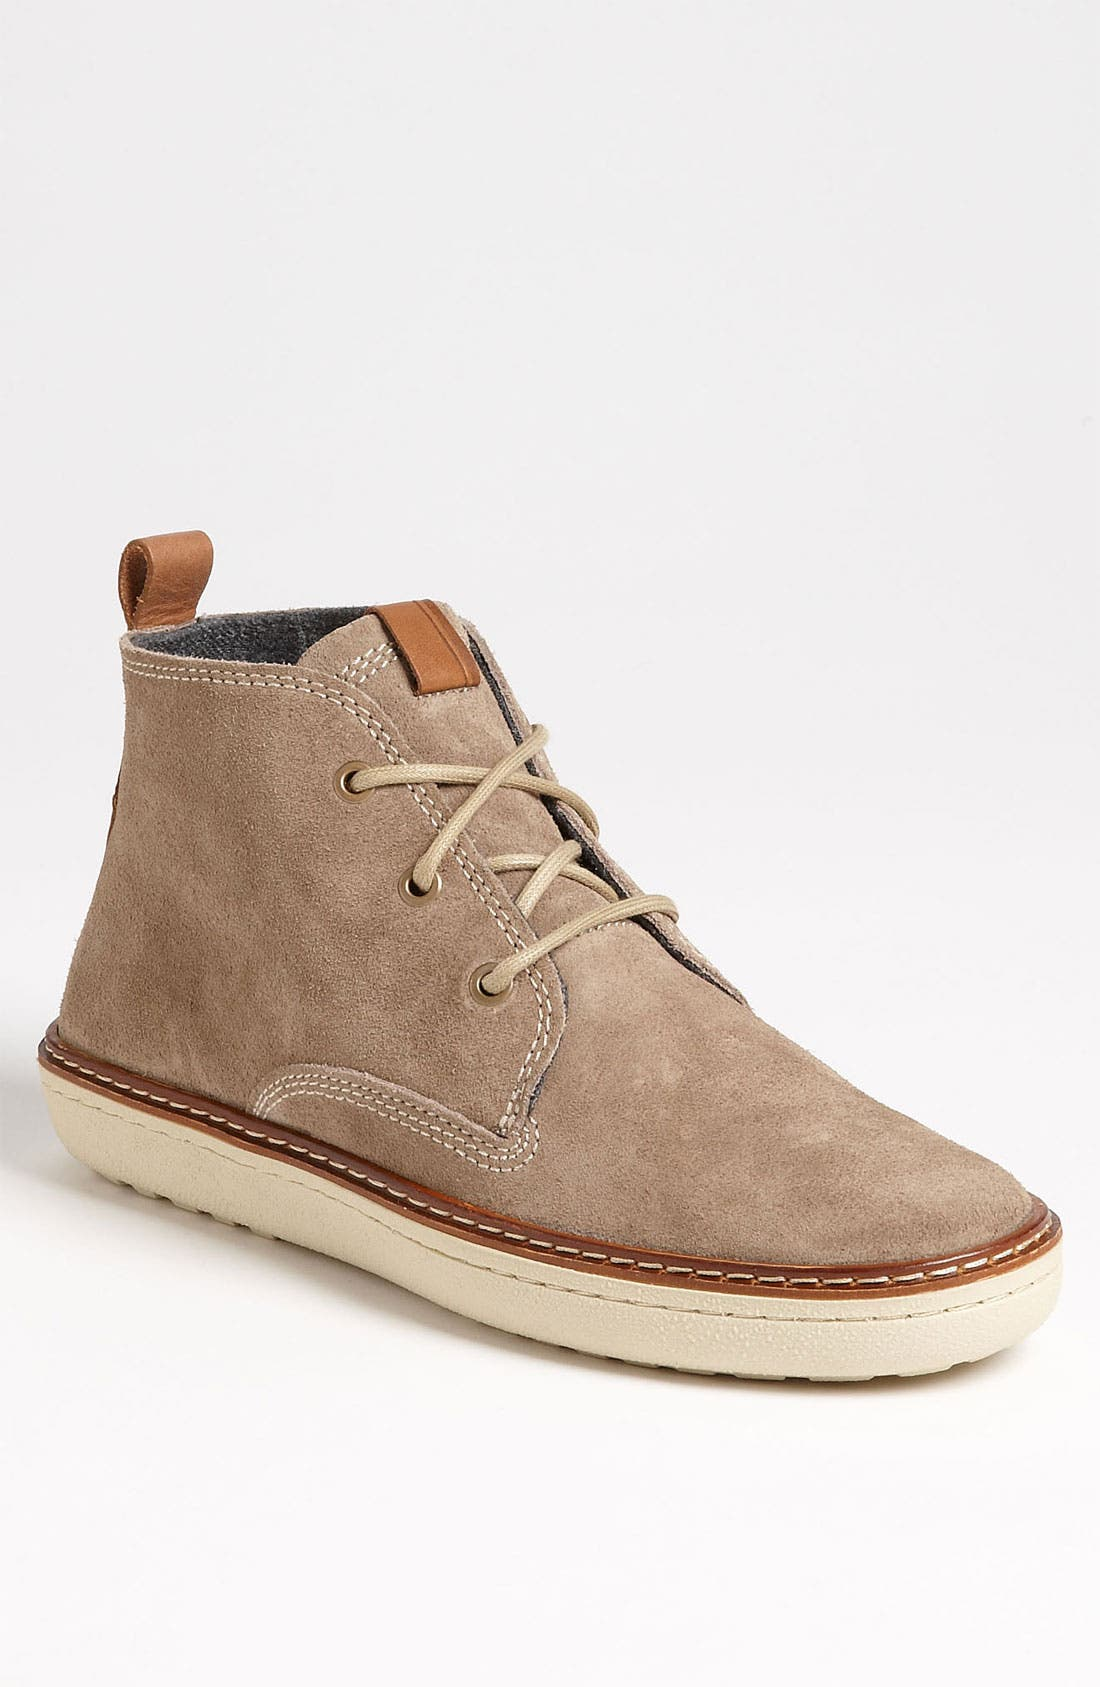 Main Image - Fred Perry 'Clayton' Suede Chukka Boot